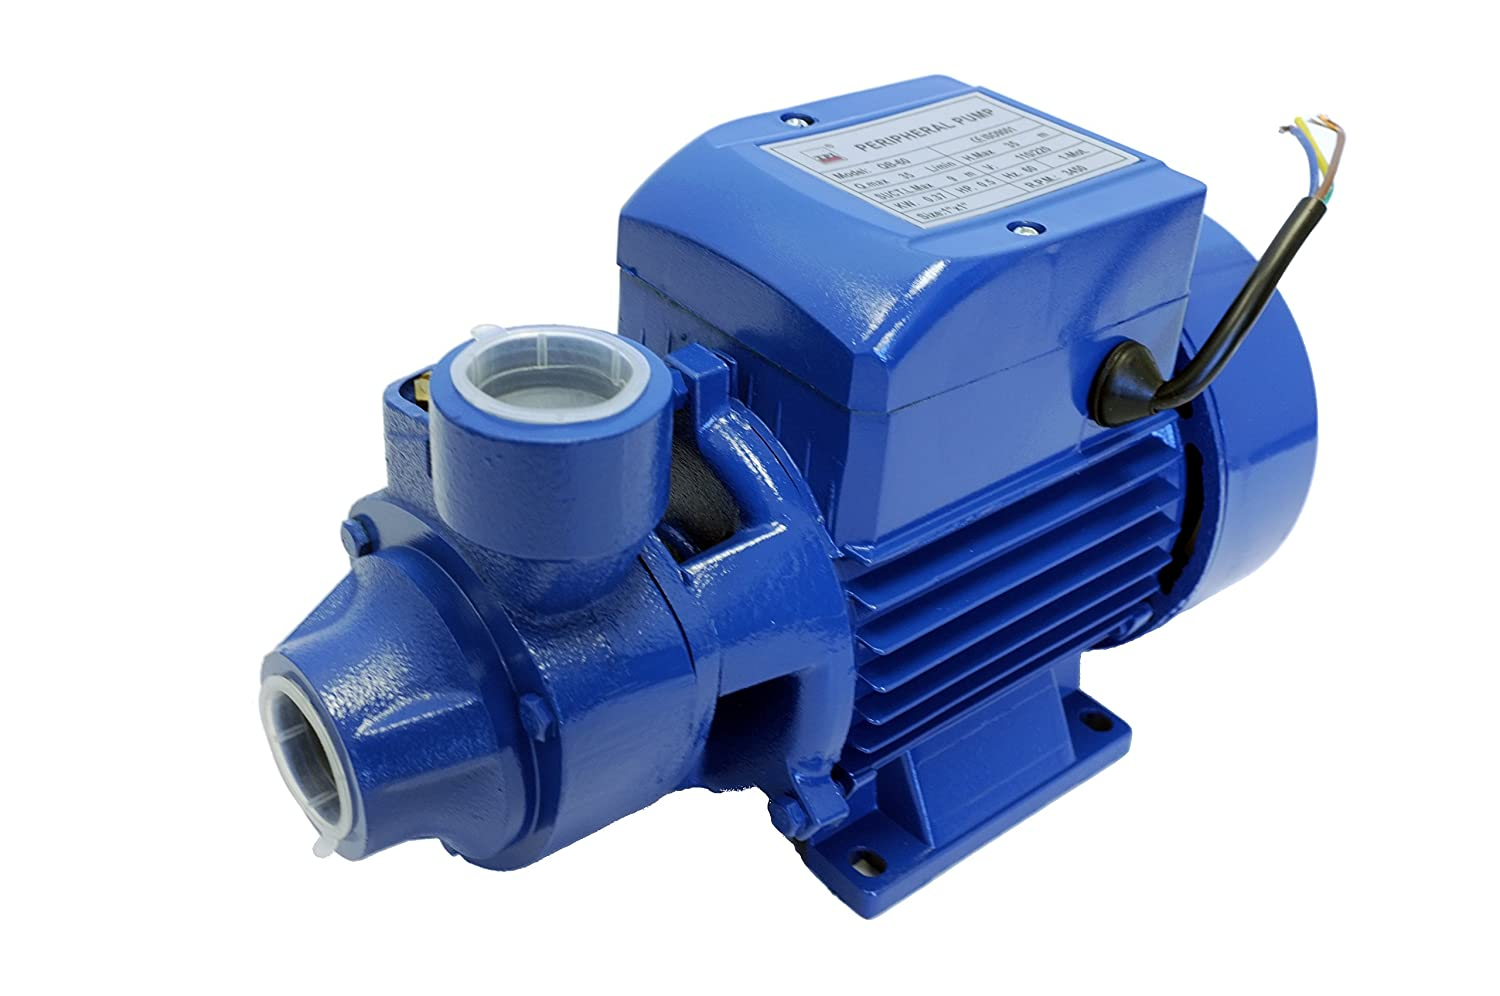 Electric Centrifugal Peripheral Power Clear Water Pump 0.5 1/2 Hp QB60  Pumping Garden House Pool Sprinkling Water - - Amazon.com